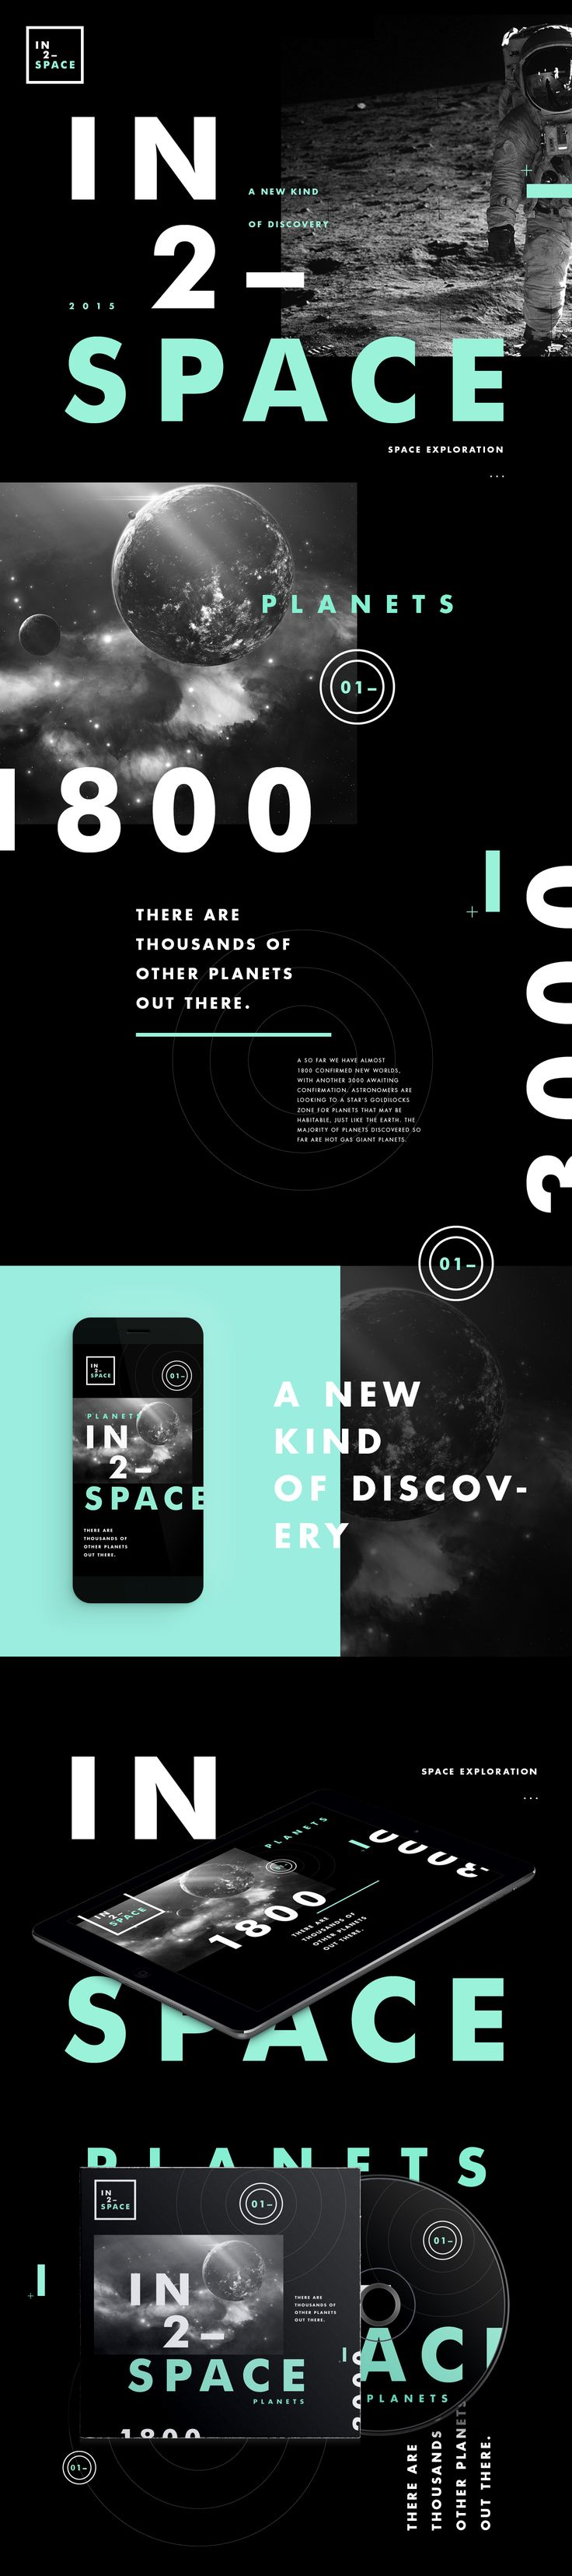 IN2–SPACE: A collection of awesome facts and information about space. This development includes elements such as colour palette, iconography, cover art, web and mobile design.All works © STUDIOJQ 2015